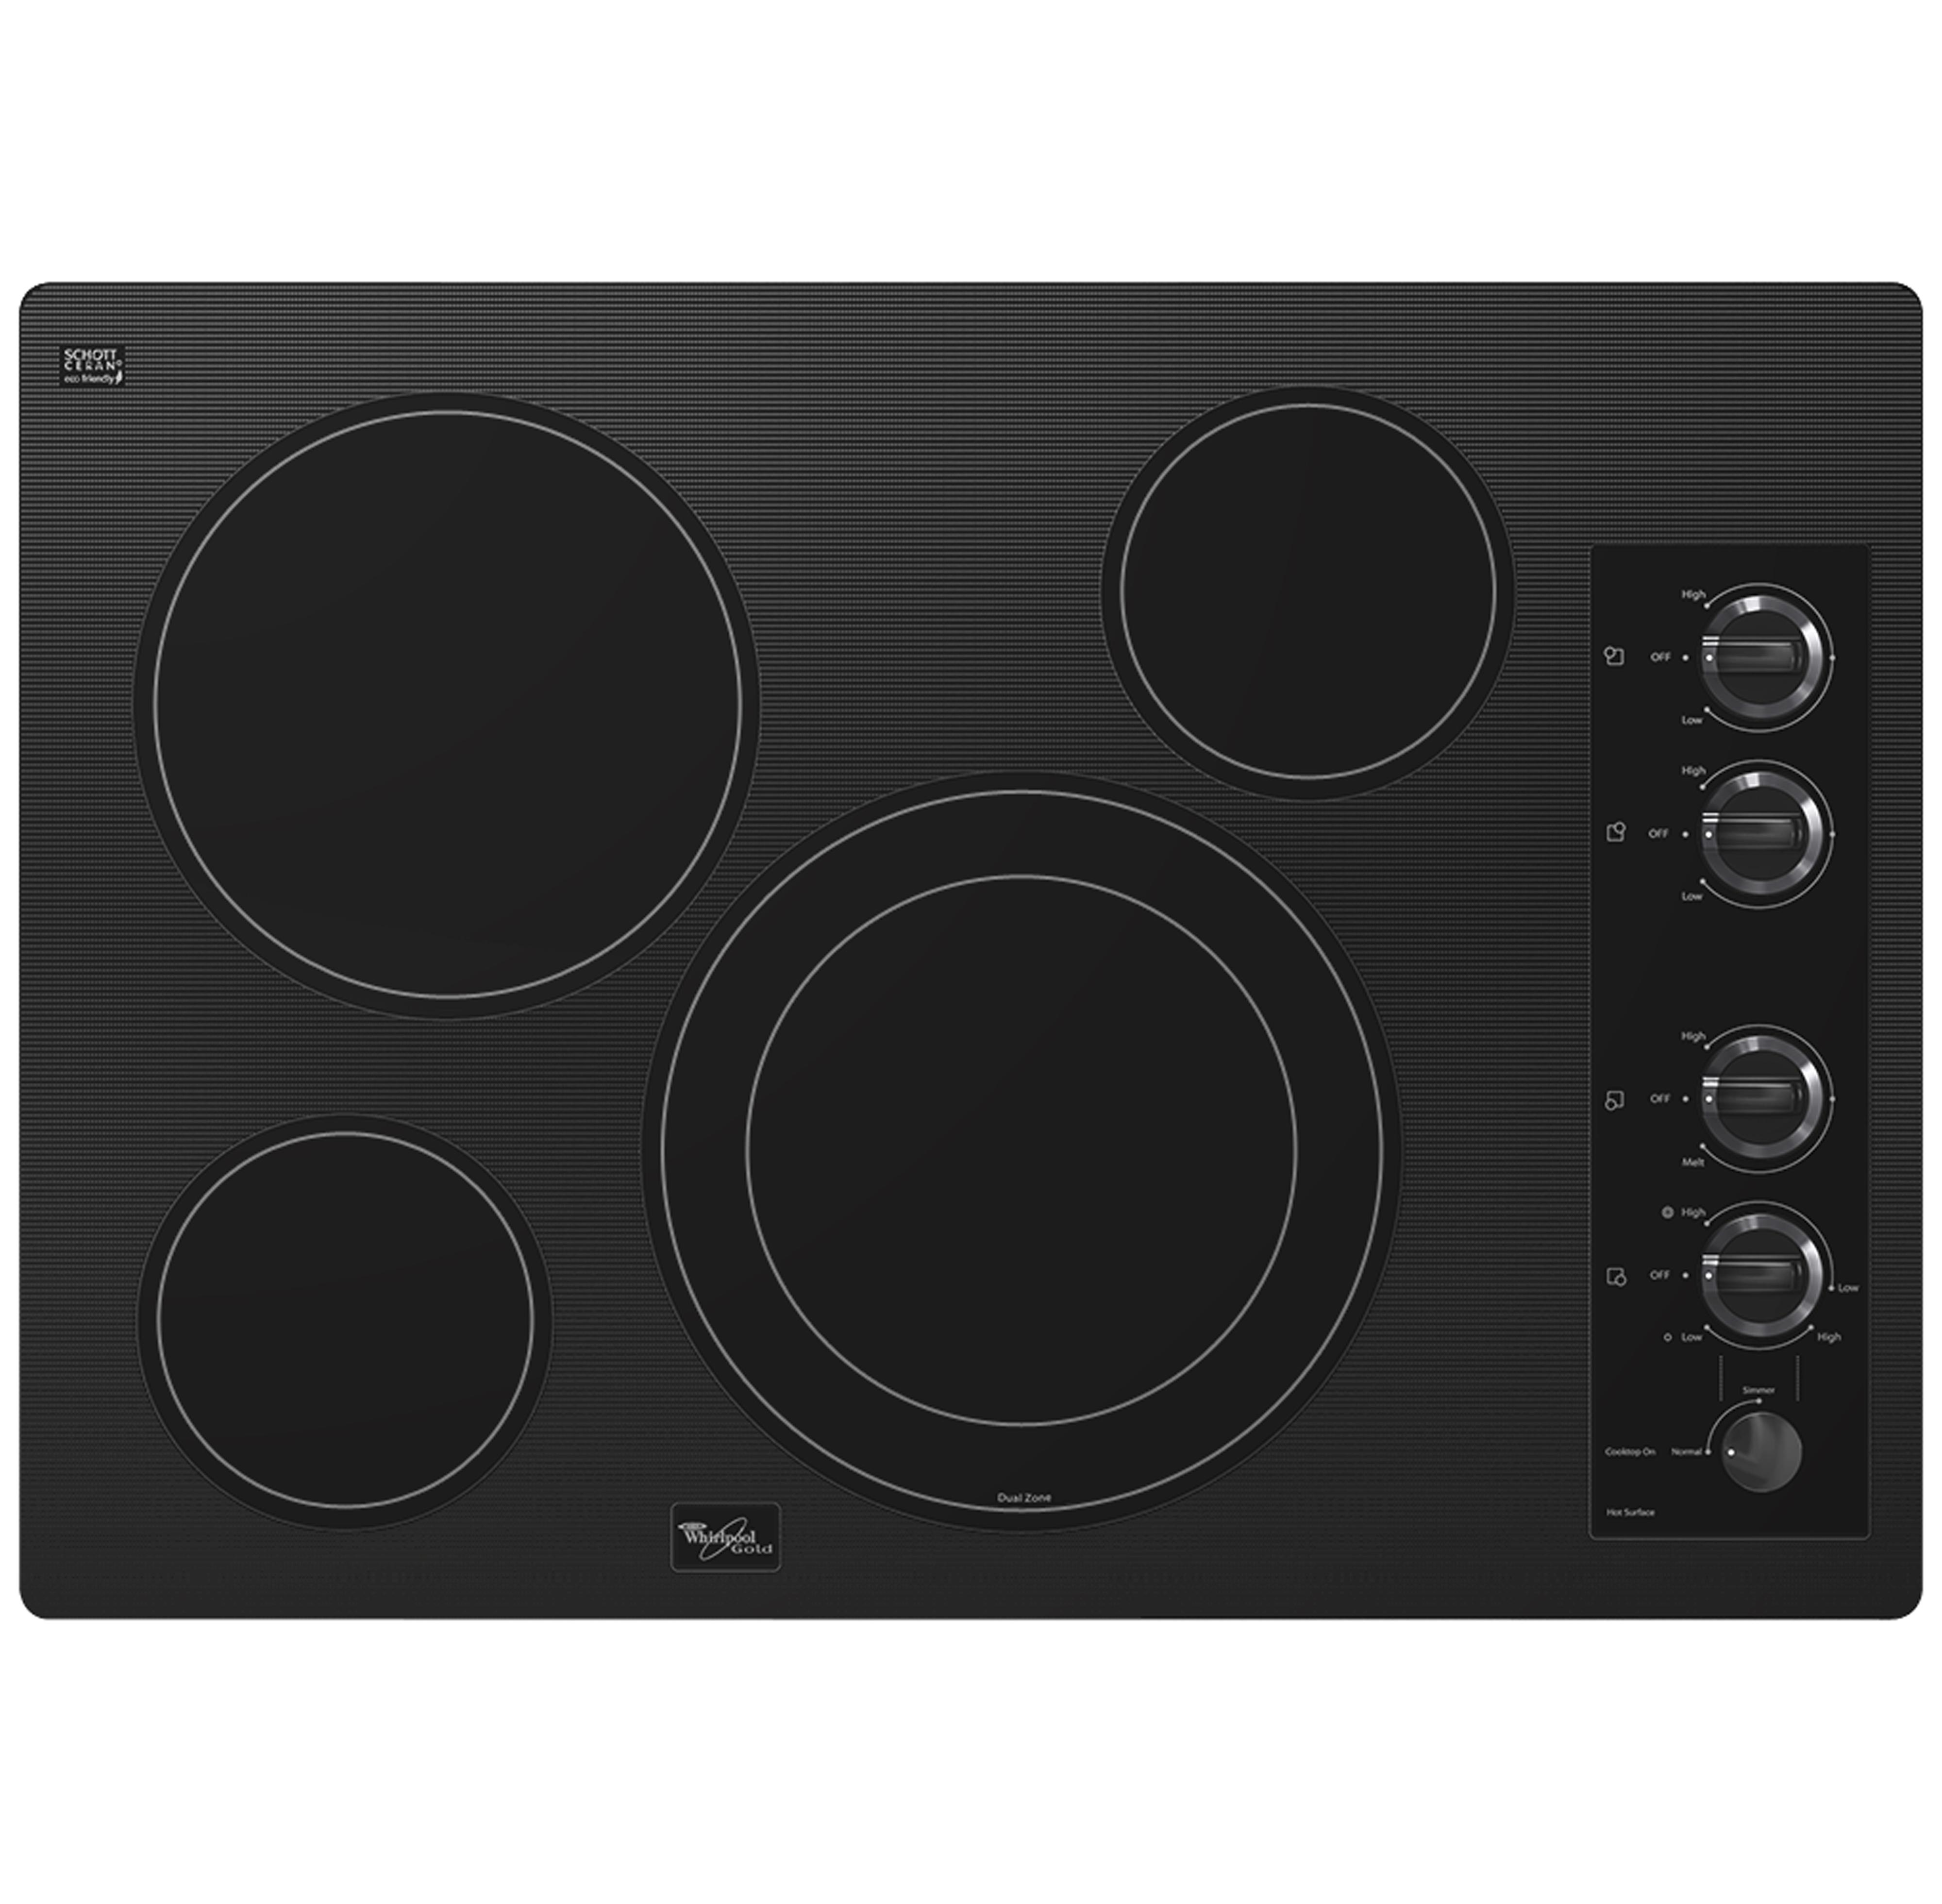 """Whirlpool Electric Cooktops 30"""" Built-In Electric Cooktop - Item Number: G7CE3034XB"""